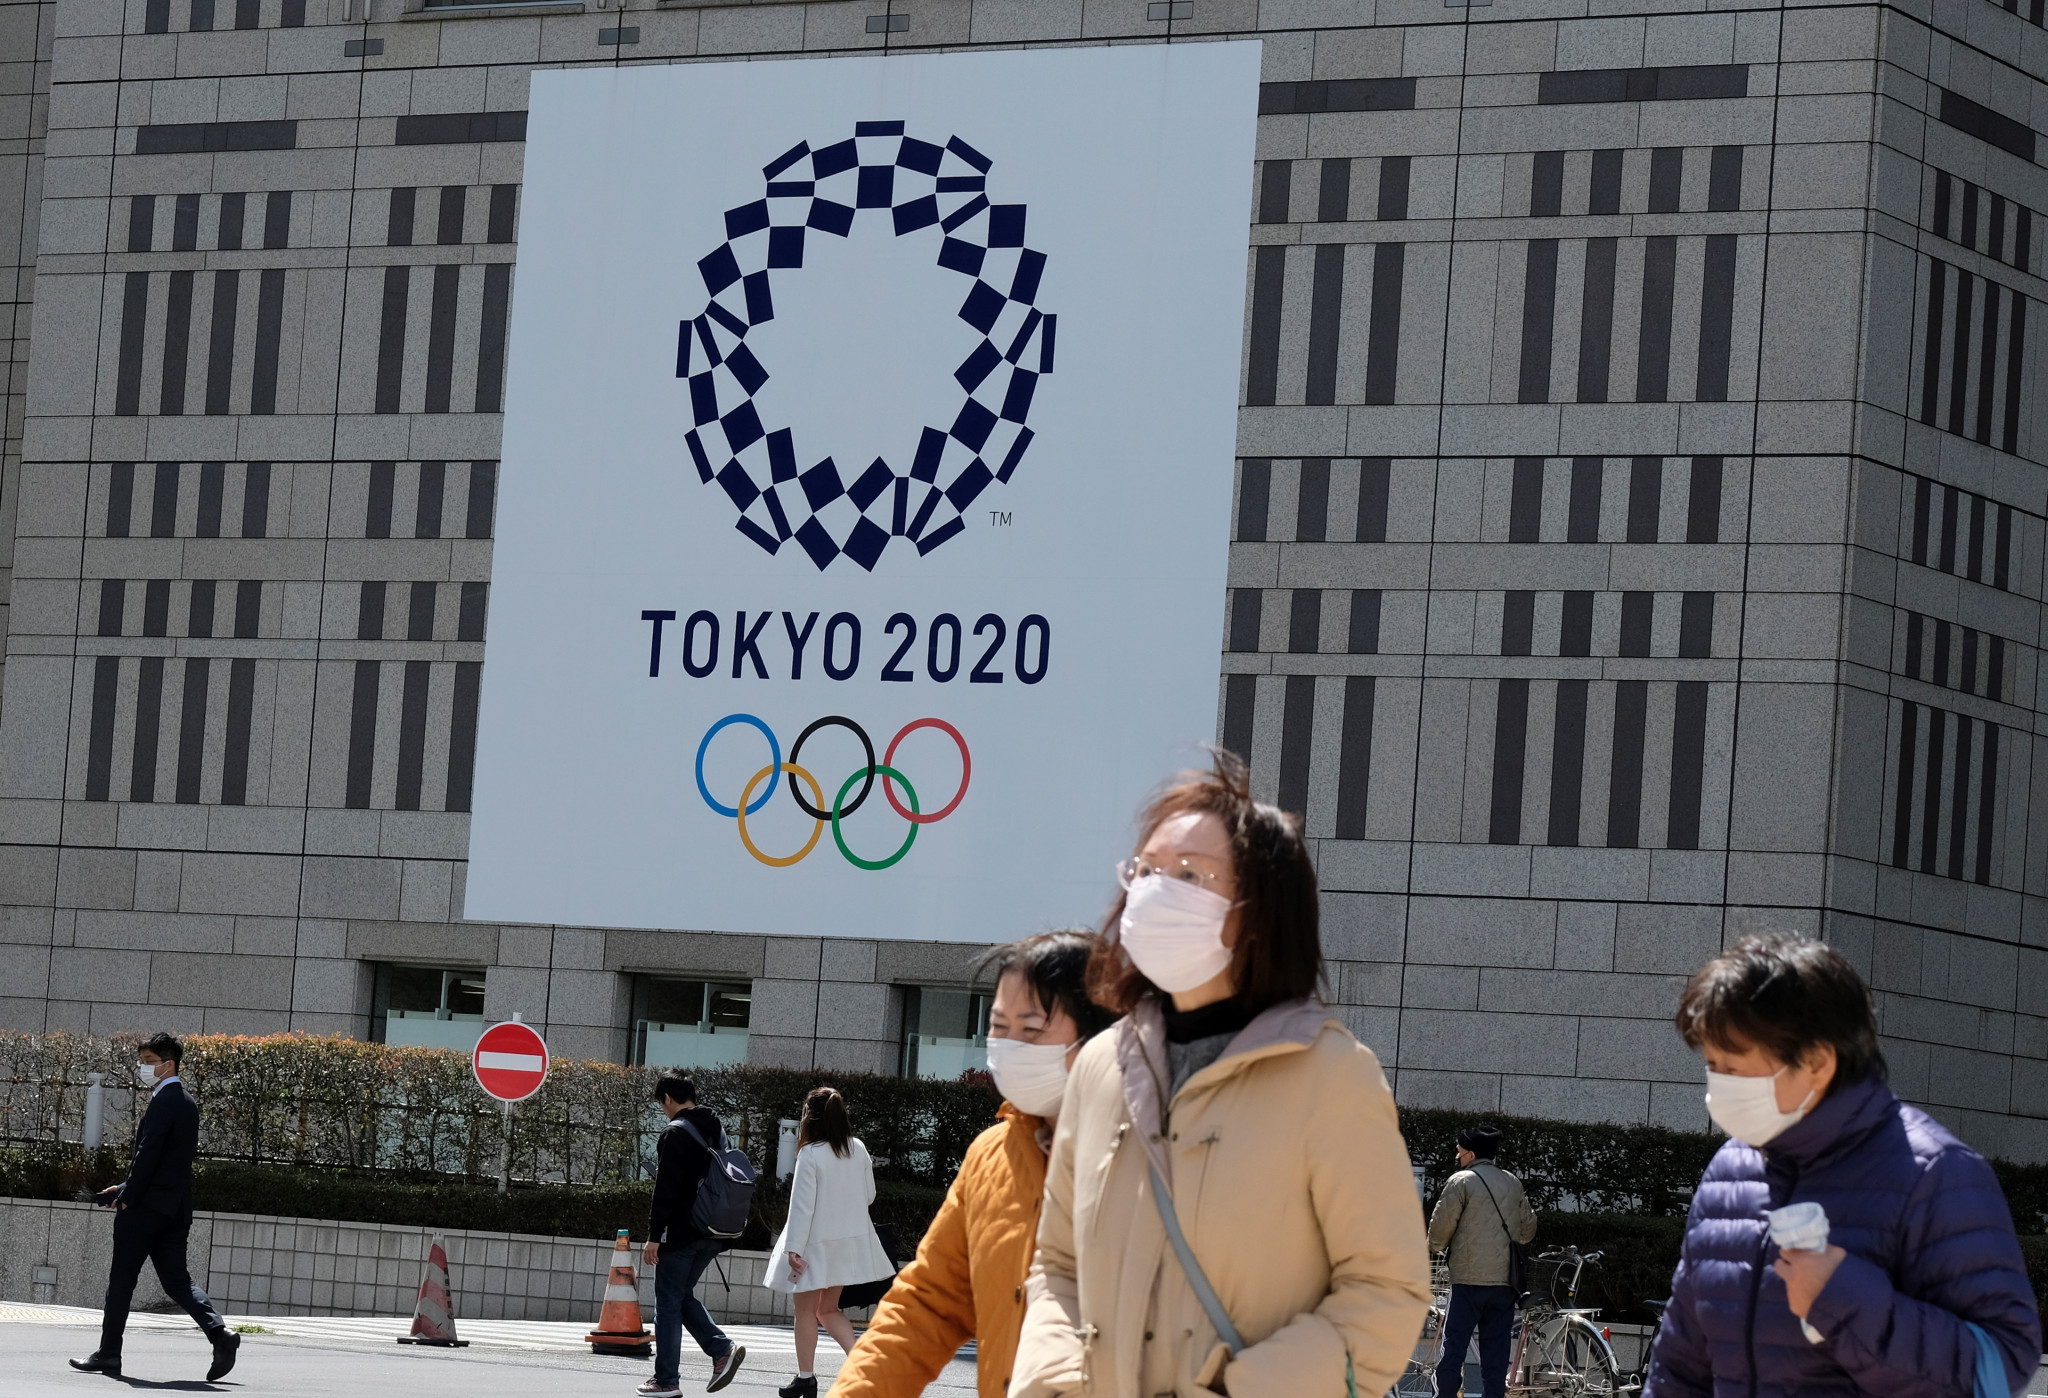 More than 60 per cent of volunteers said they were concerned about how Tokyo 2020 could take place during the pandemic ©Getty Images